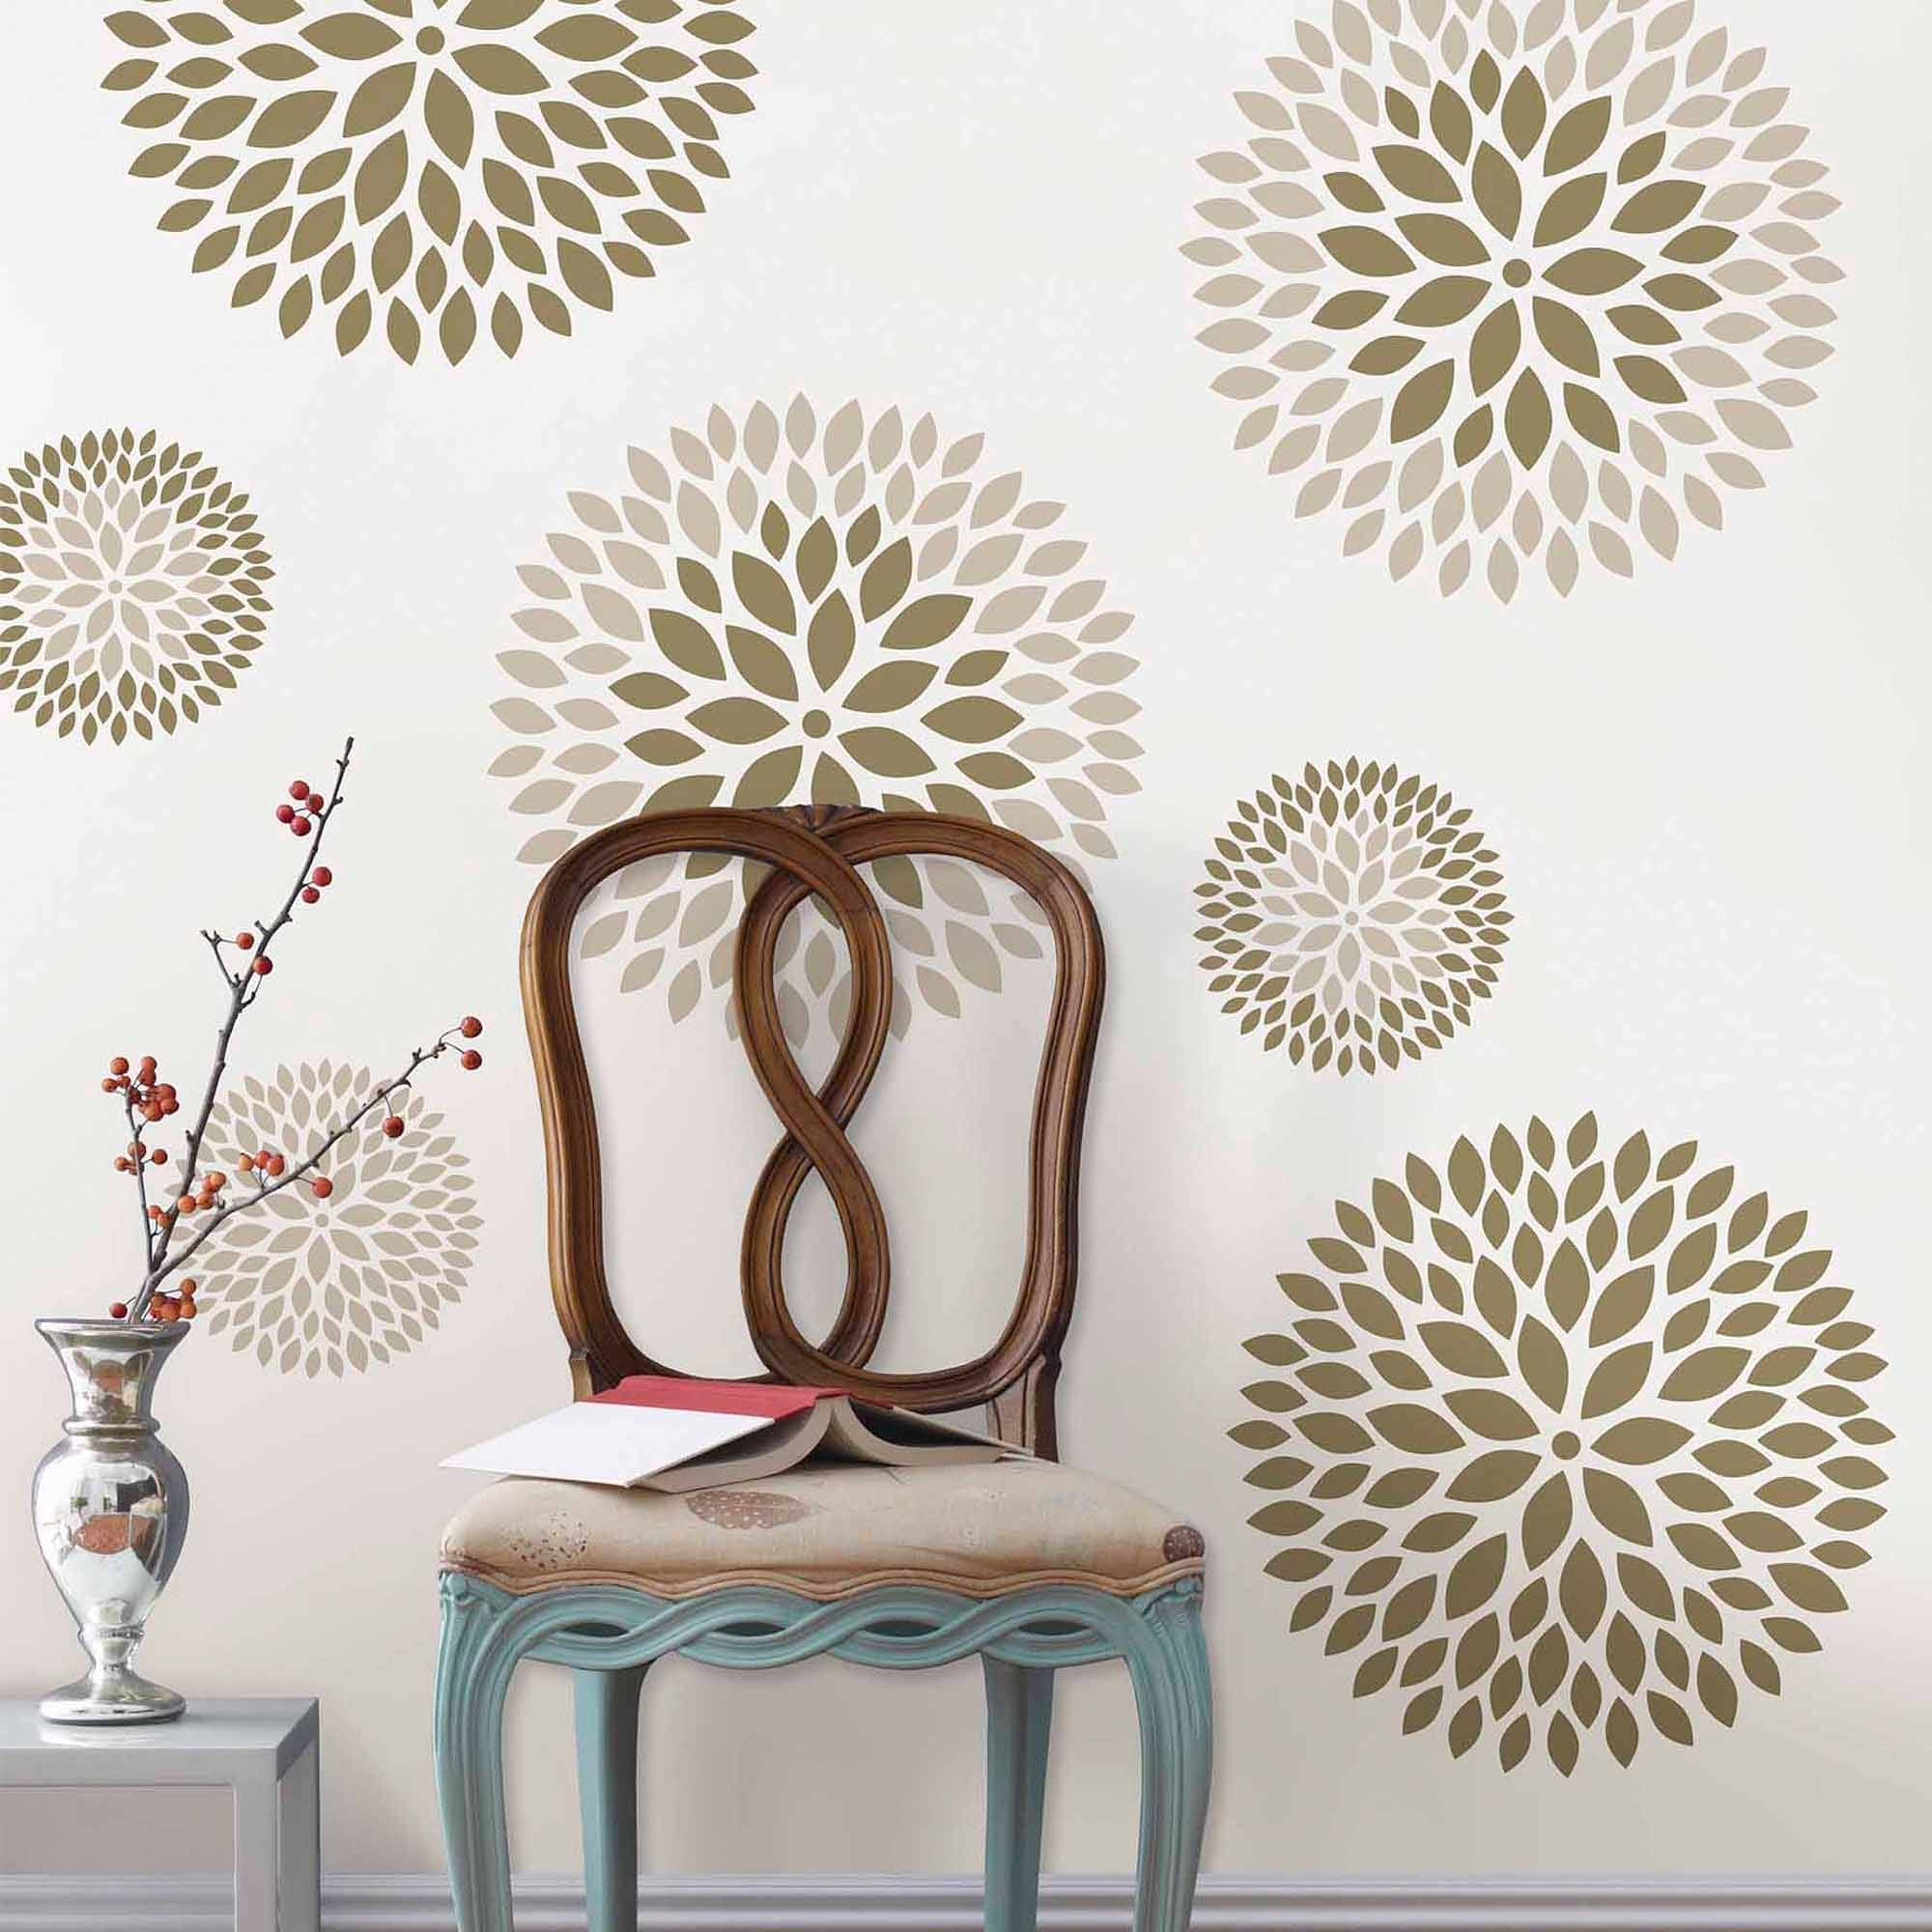 Wallpops Chrysanthemum Wall Art Decals Kit – Walmart Regarding Most Recently Released Pattern Wall Art (View 19 of 20)